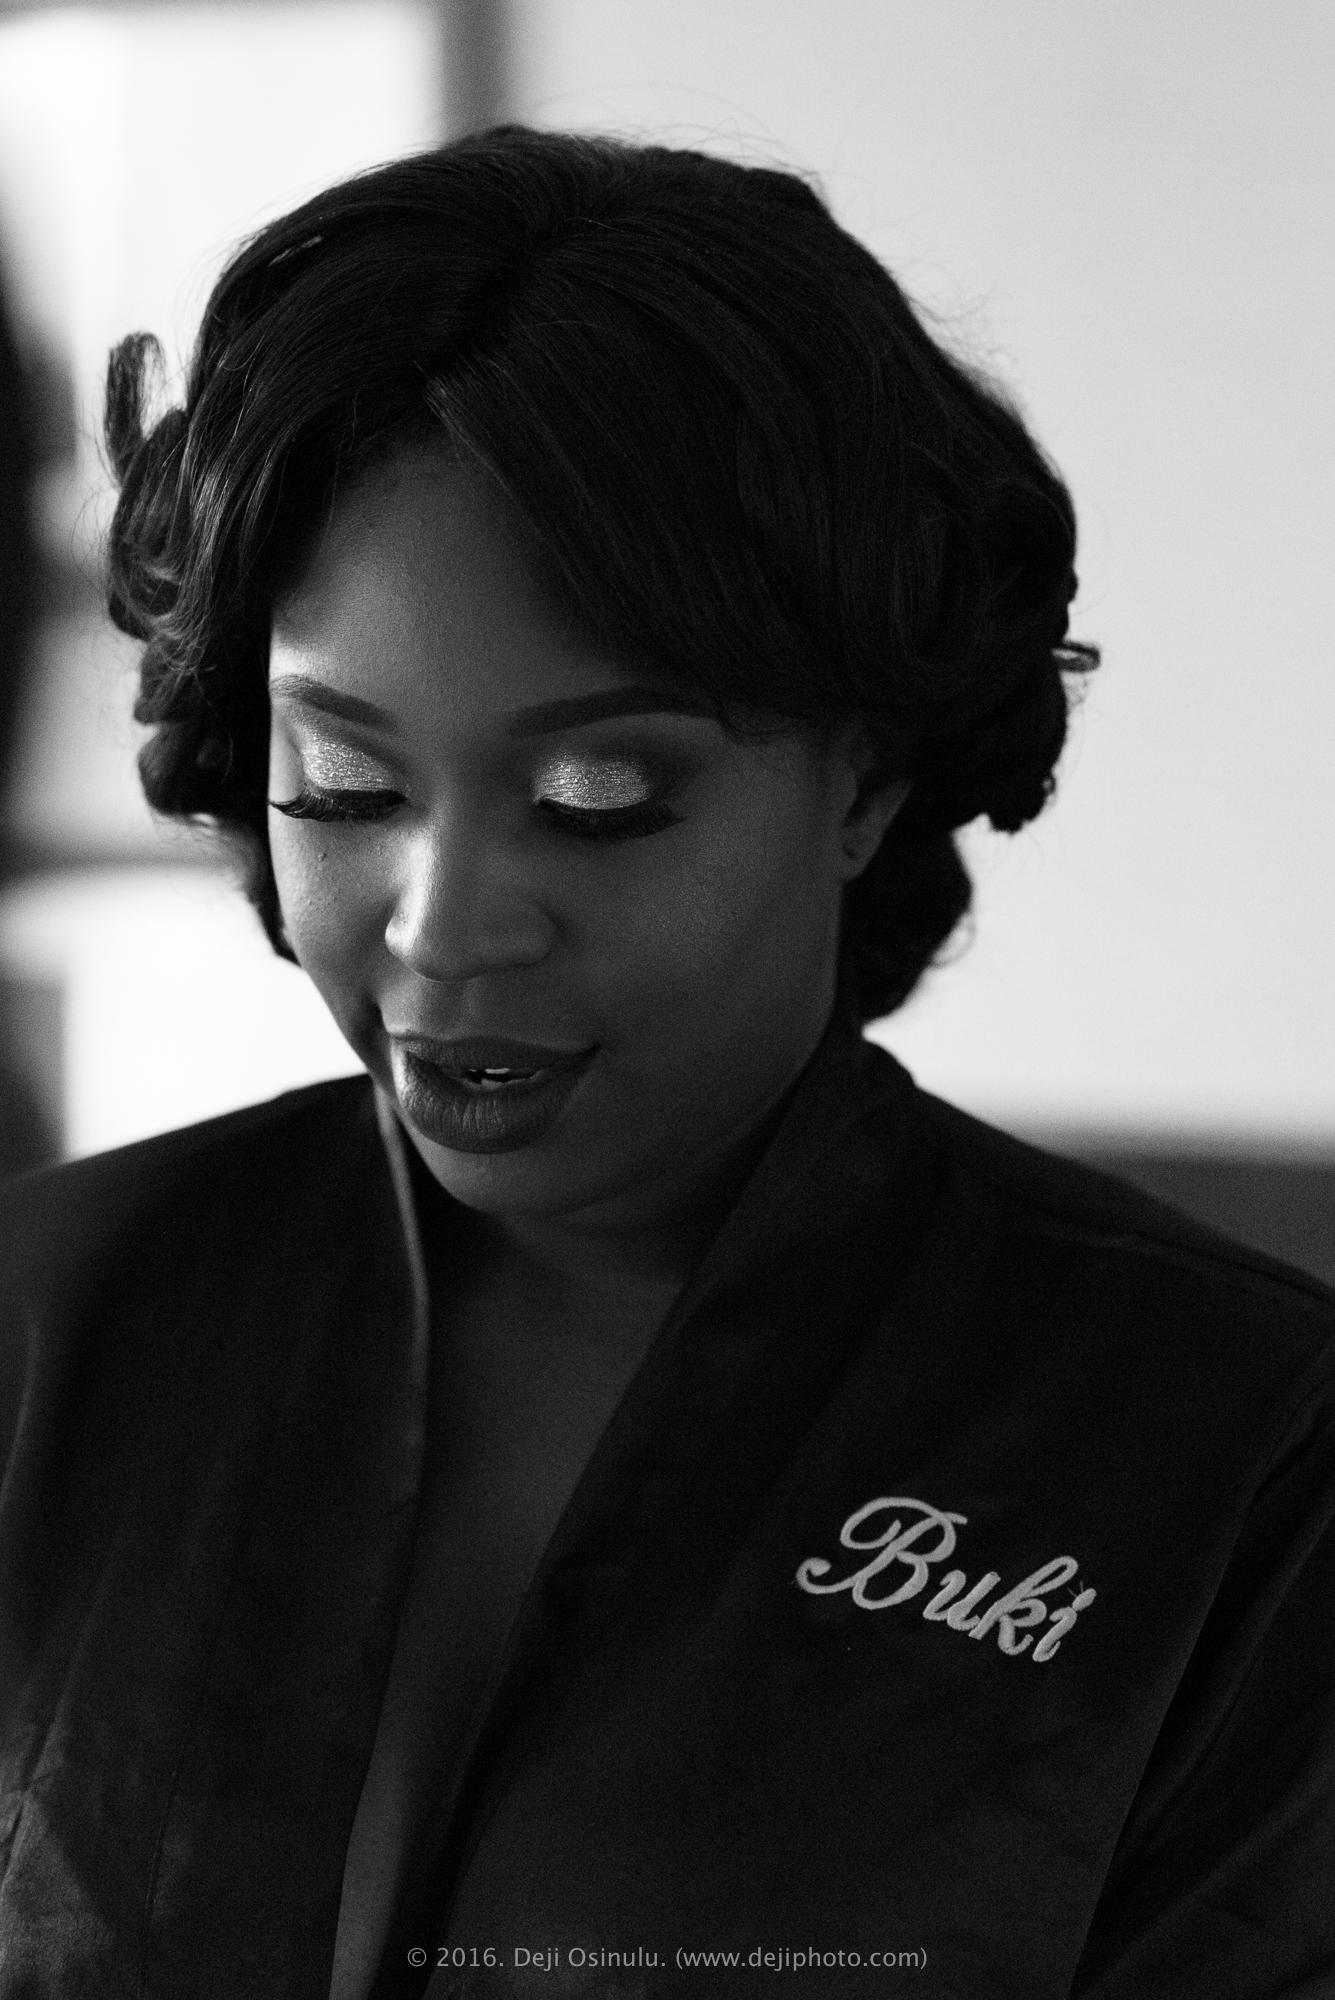 The Wedding of Buki + Femi | Modern Meets Traditional - A Day To Remember